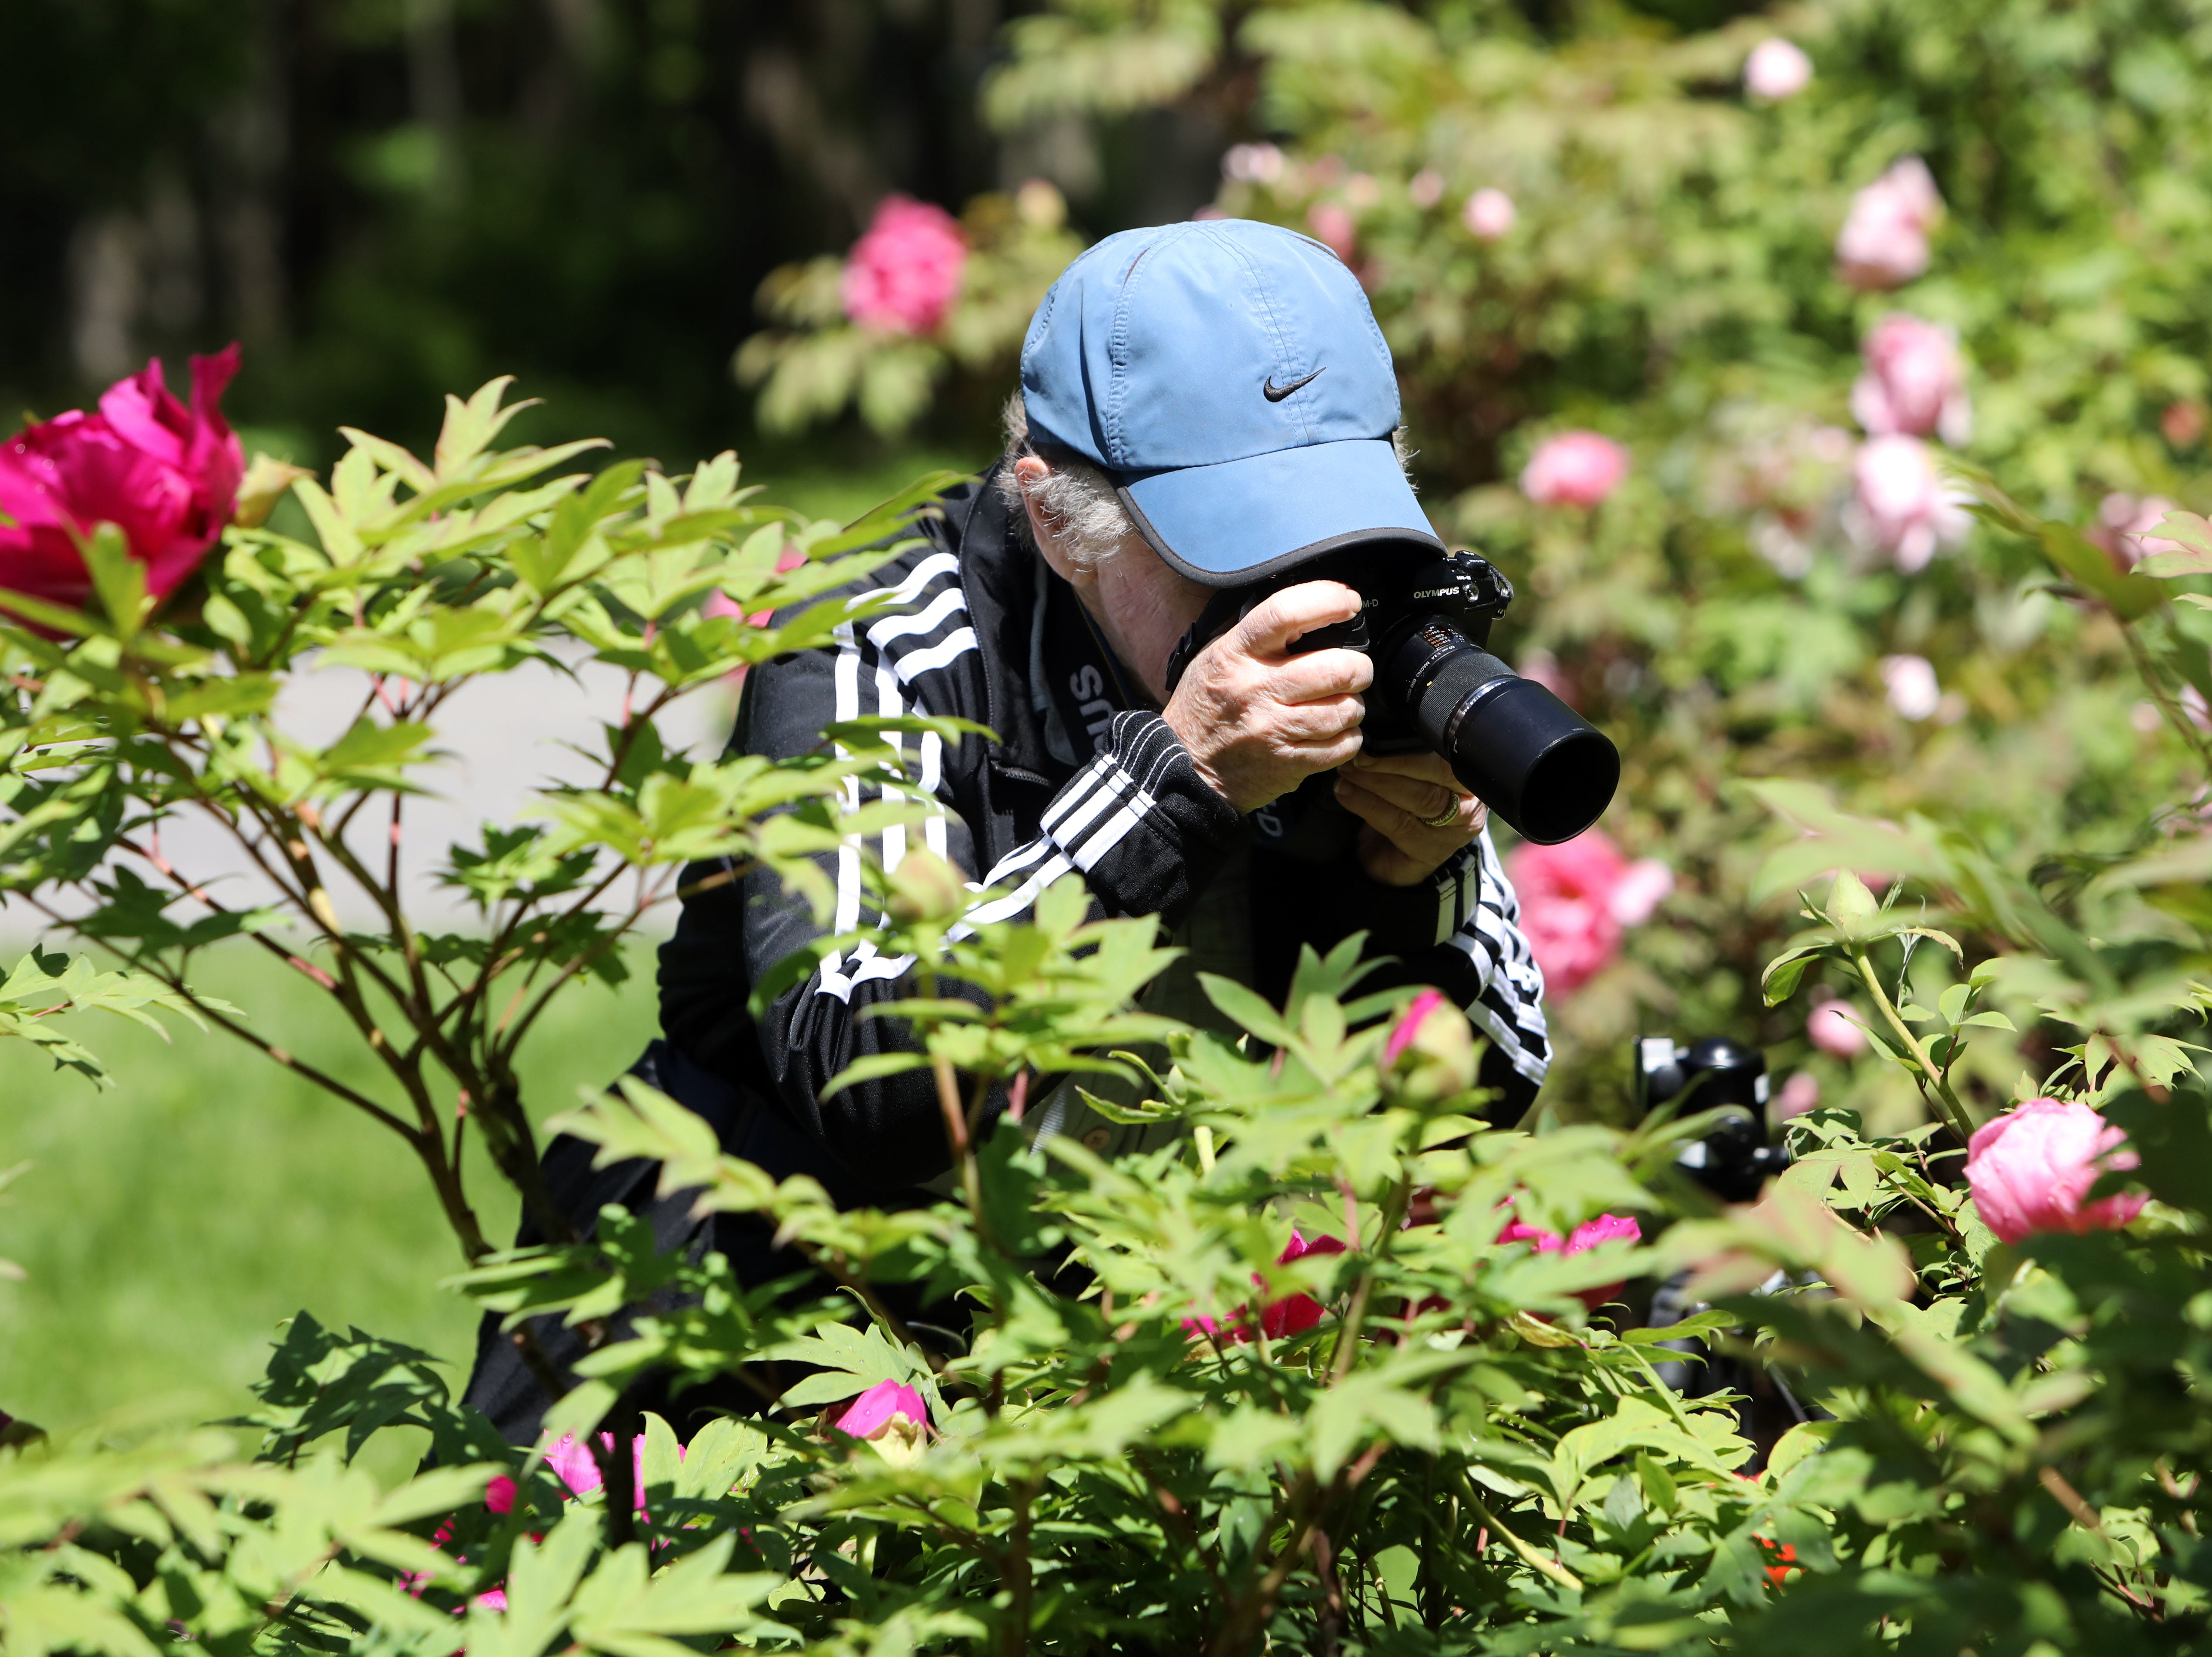 Linda Austrian, 77, of Harrison photographs a peony in full bloom at Rockefeller State Park Preserve in Pleasantville May 15, 2019. Austrian and a few others from the Westchester Photographic Society our celebrating a friend's birthday by photographing the peonies followed by lunch.